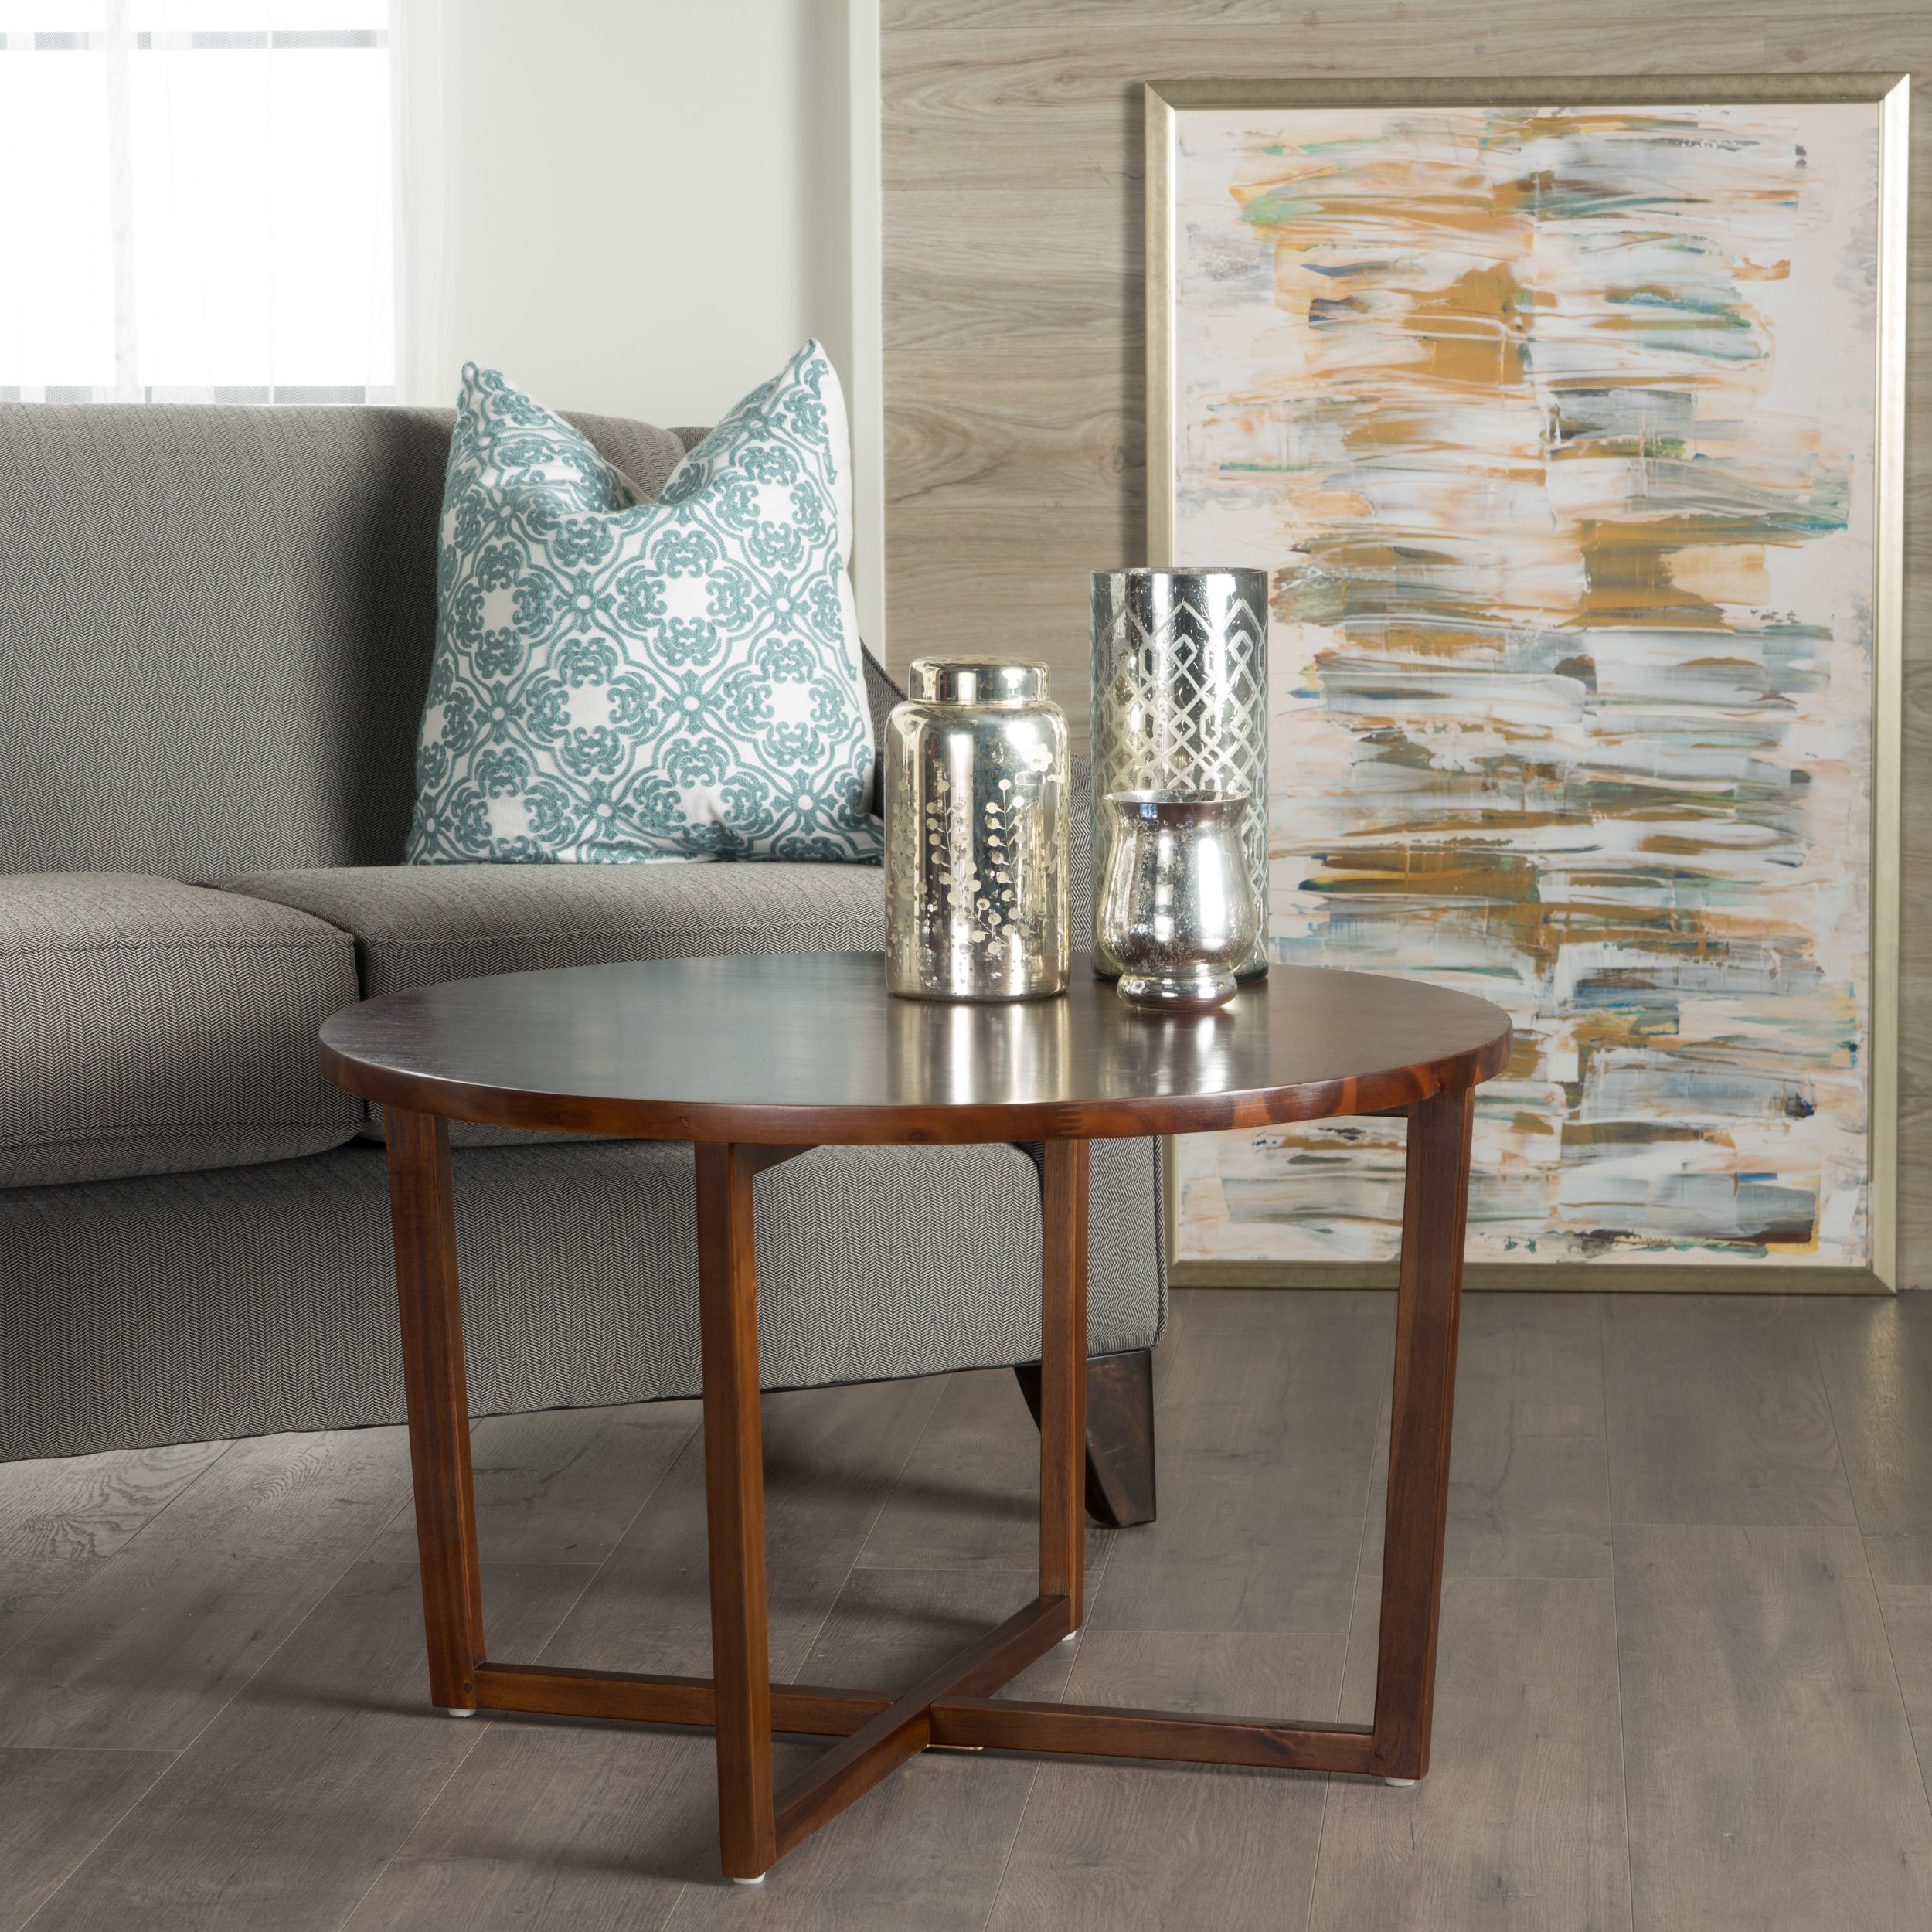 tansy round acacia wood accent table christopher knight home free shipping today rectangular patio with umbrella hole end tables nautical chair target threshold coffee bunnings